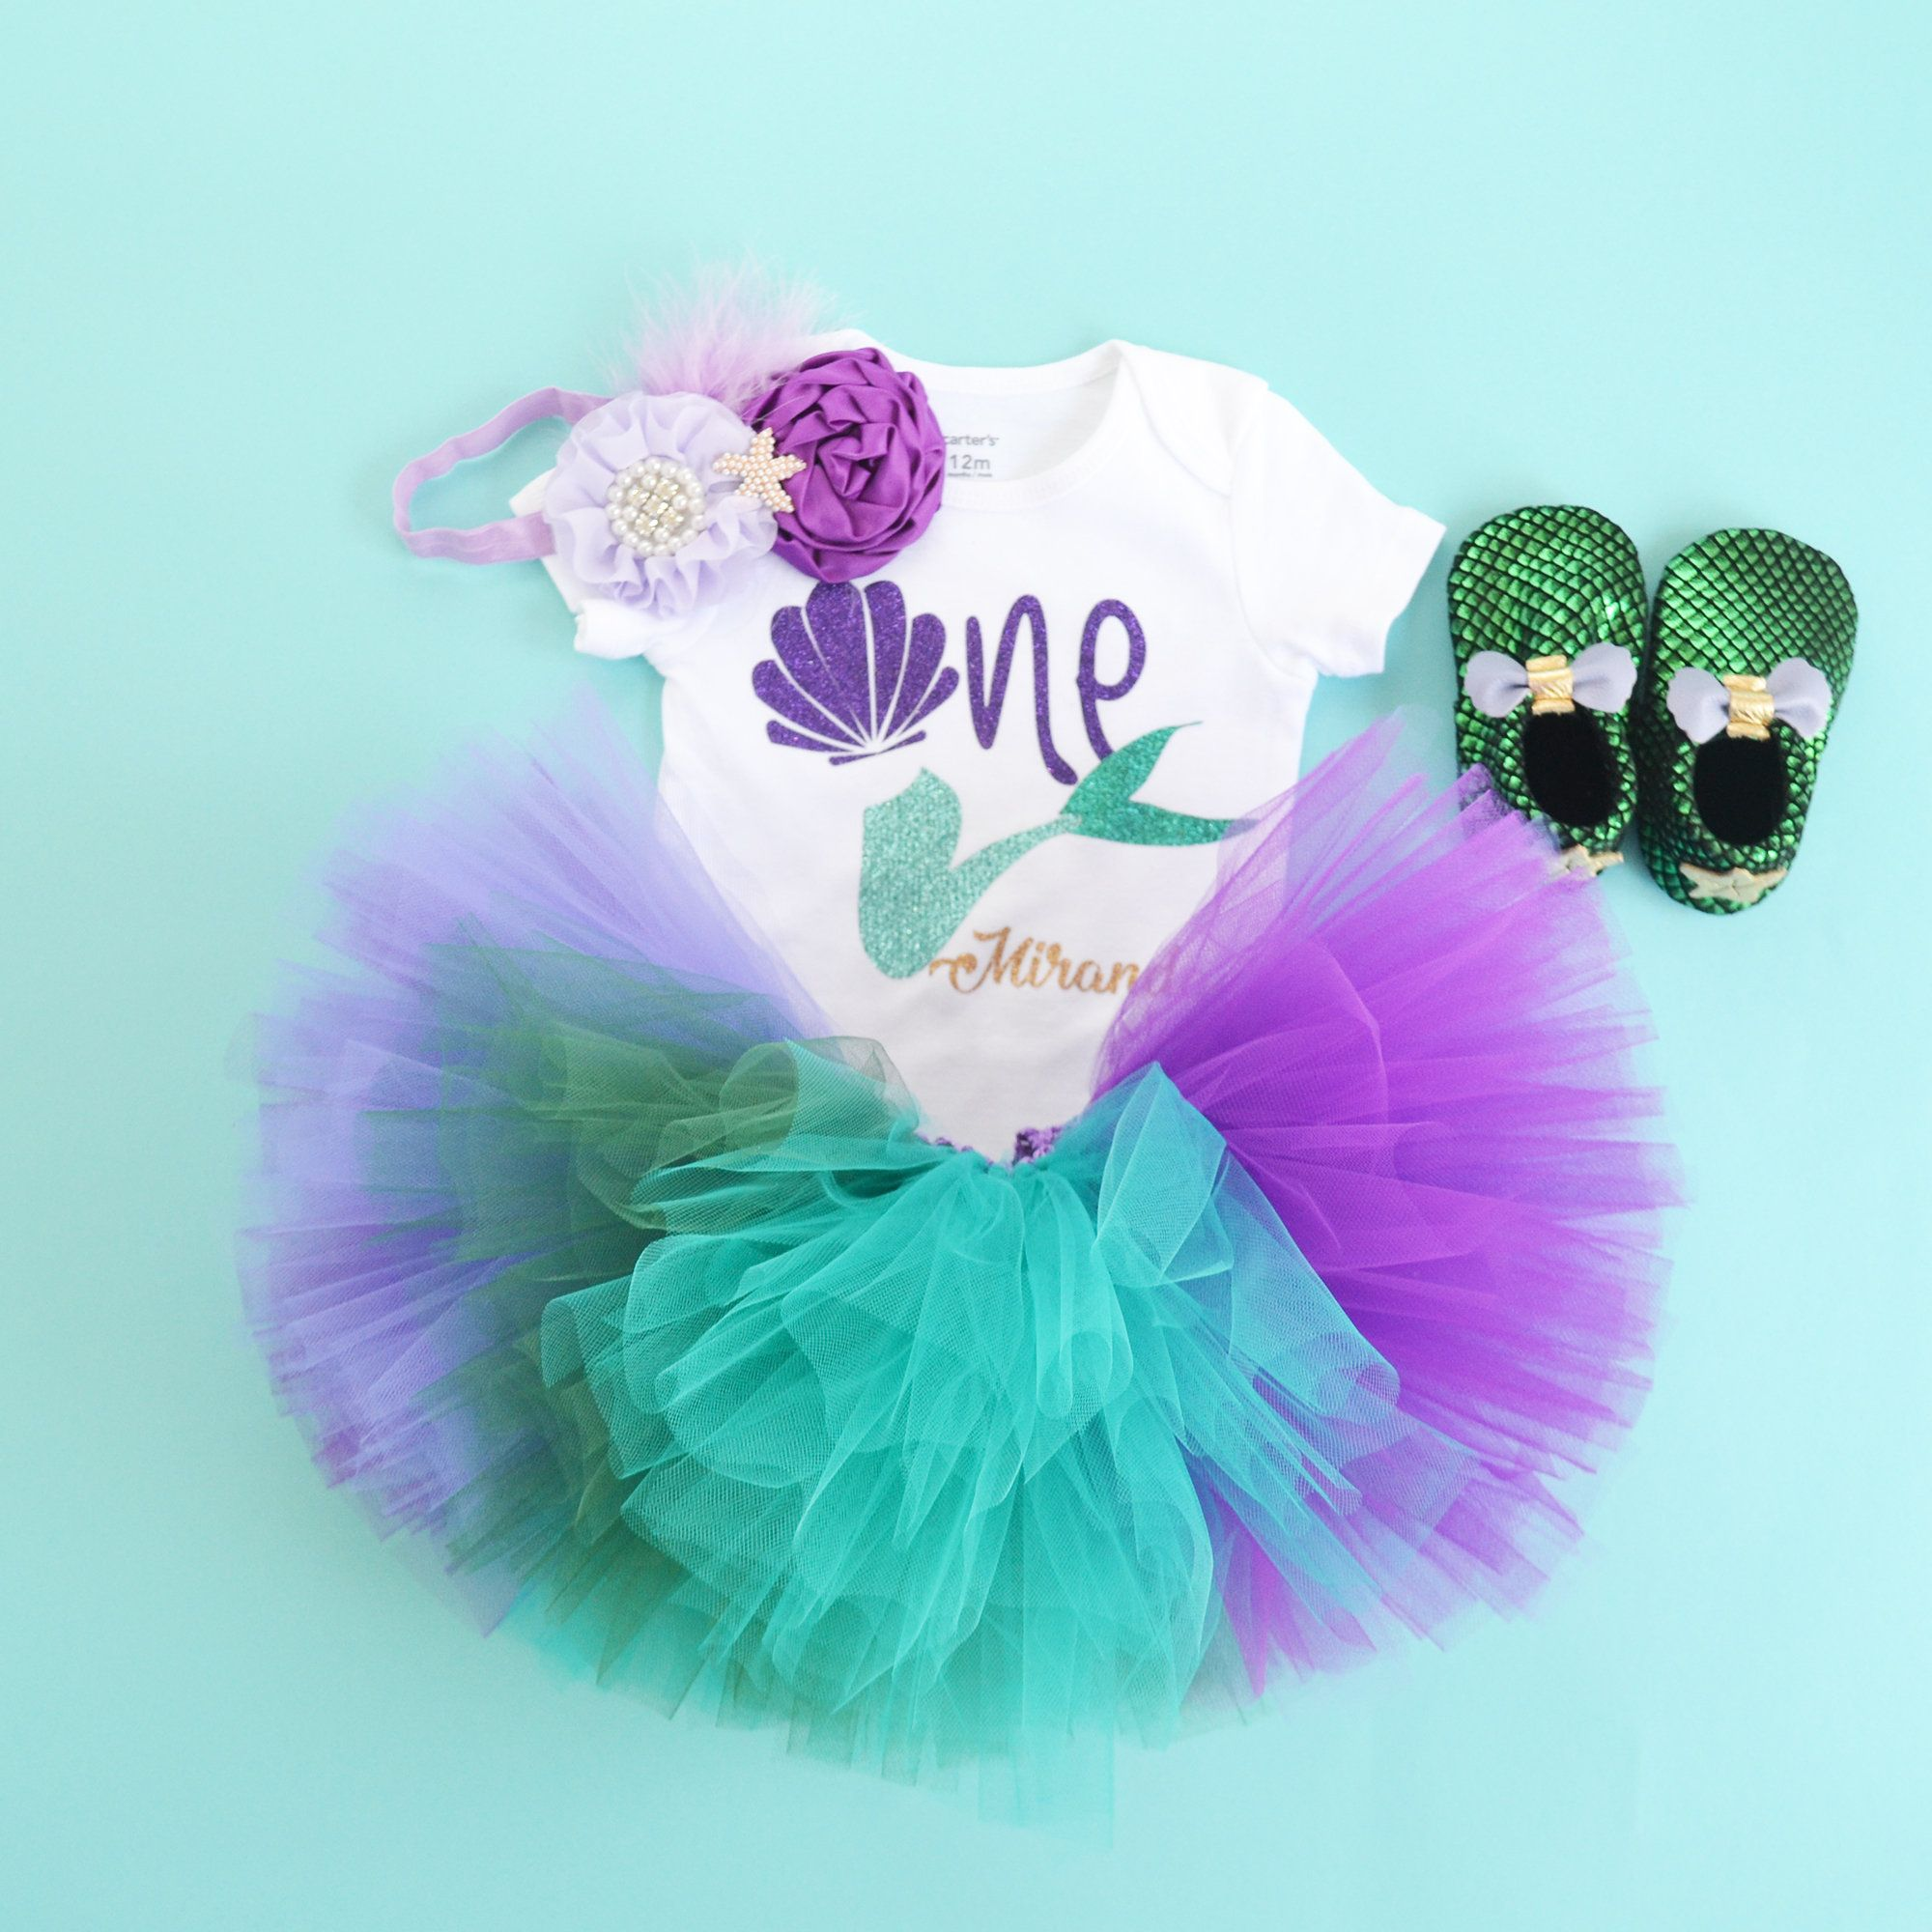 Under the sea first Birthday outfit, little mermaid outfit, Aqua lavender tutu, sea shell bodysuit. Shoes are not included. #birthdayoutfit